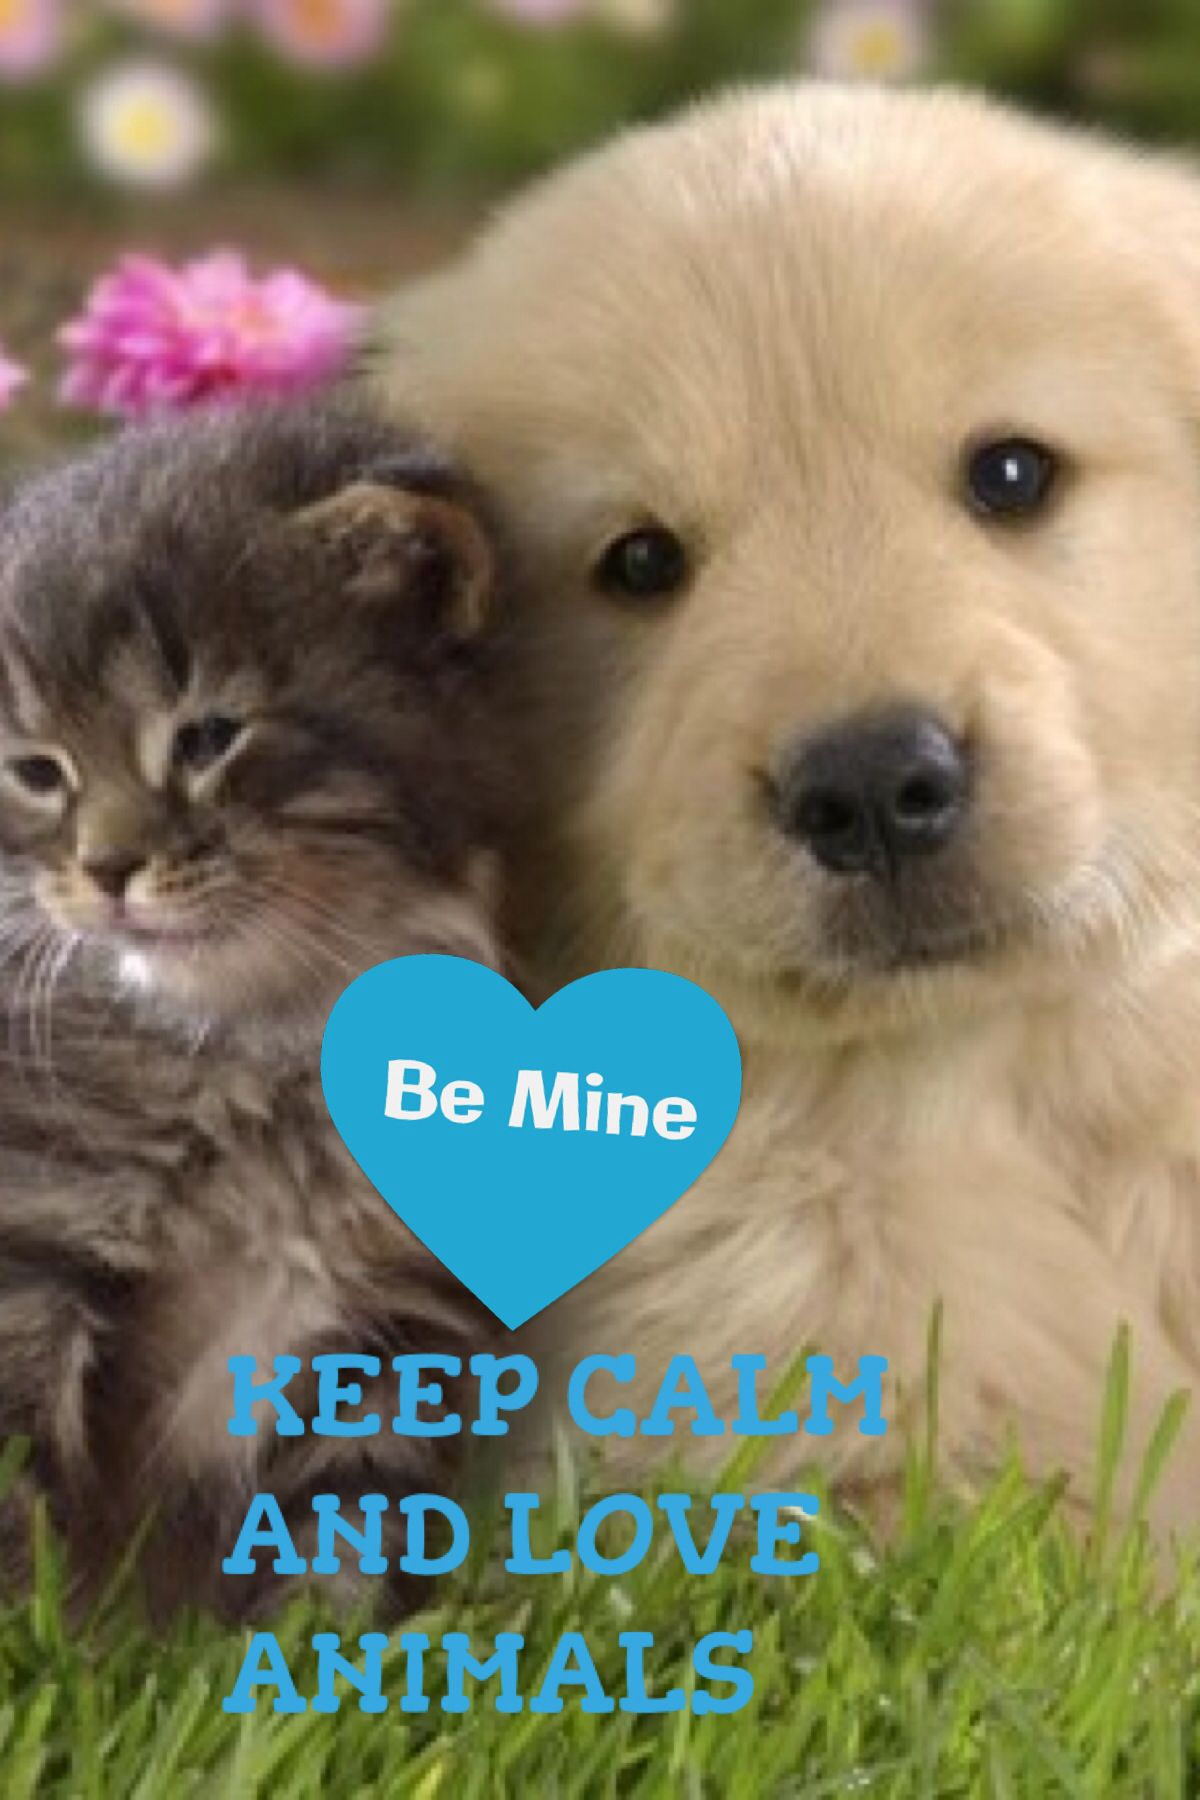 I love animals Cute cats and dogs, Kittens and puppies